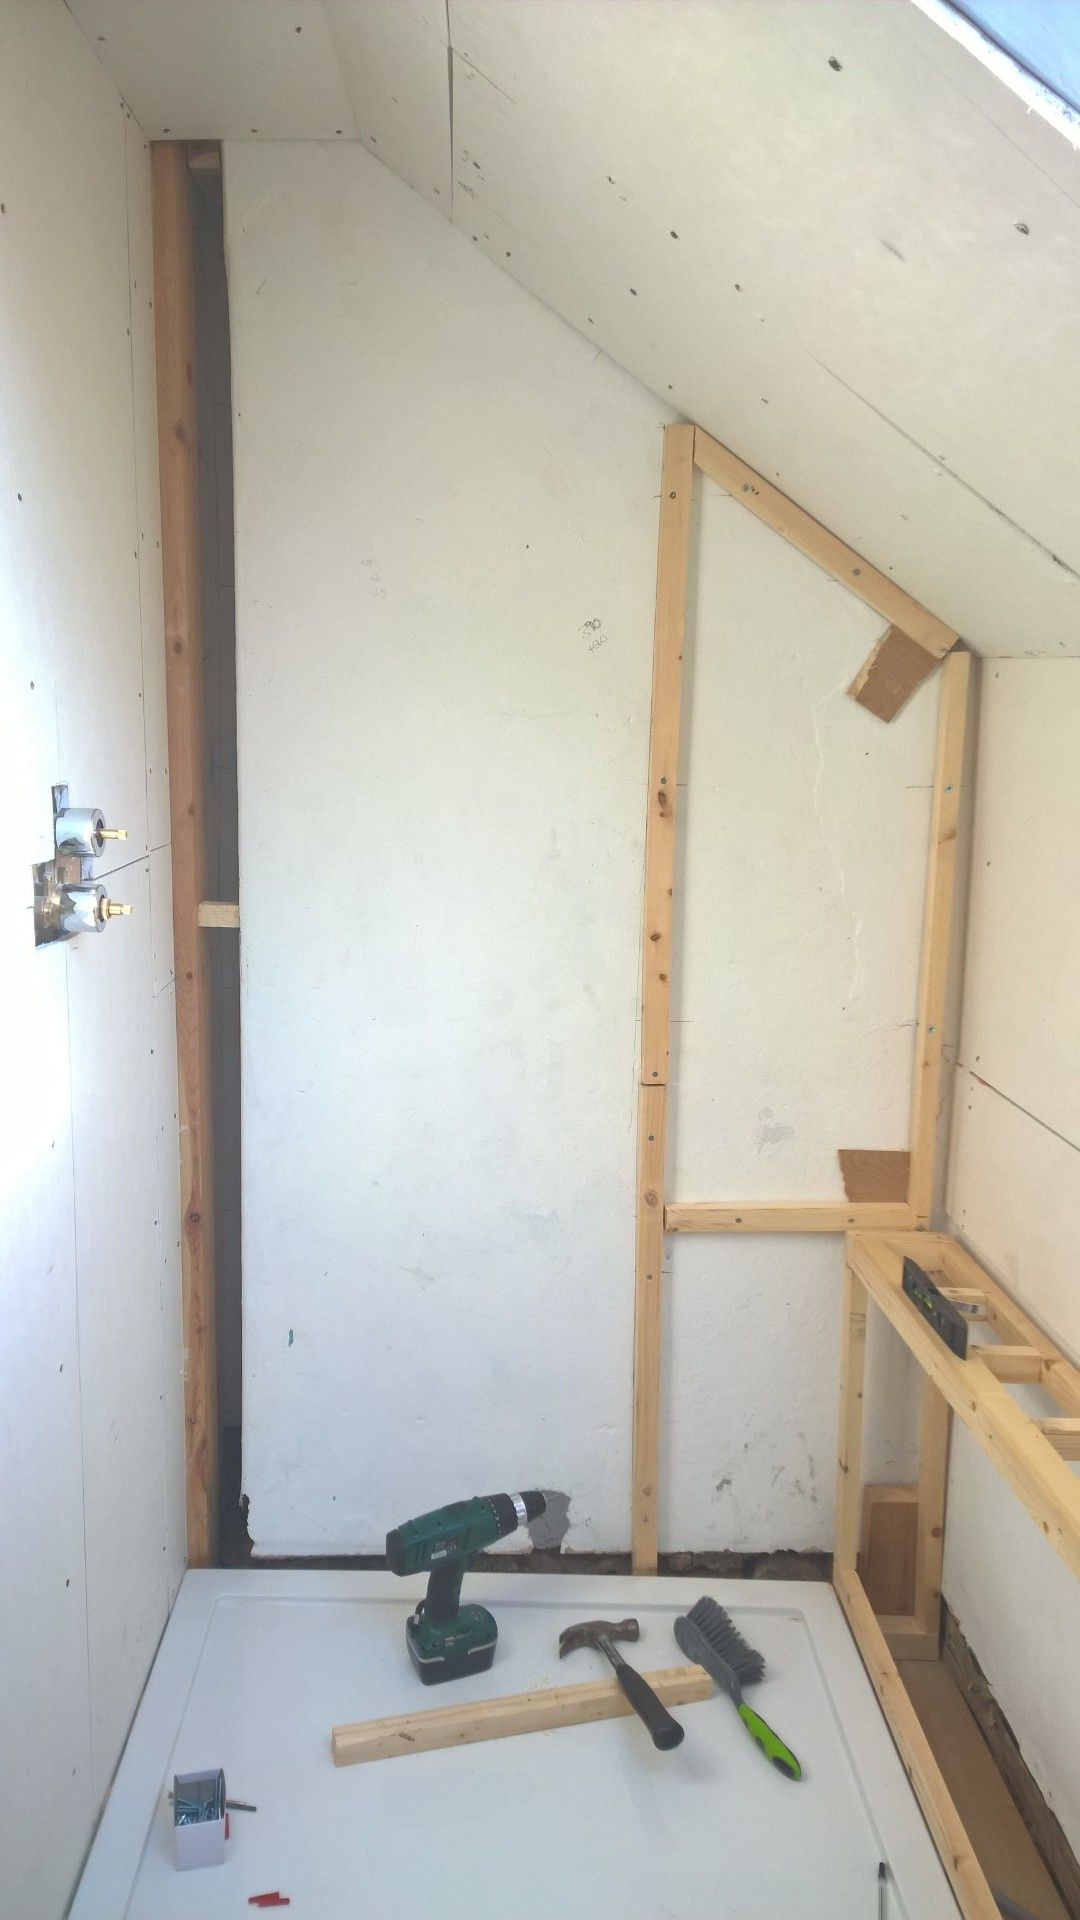 64.) So this is why my walls / tile backer board / drilling anything ...